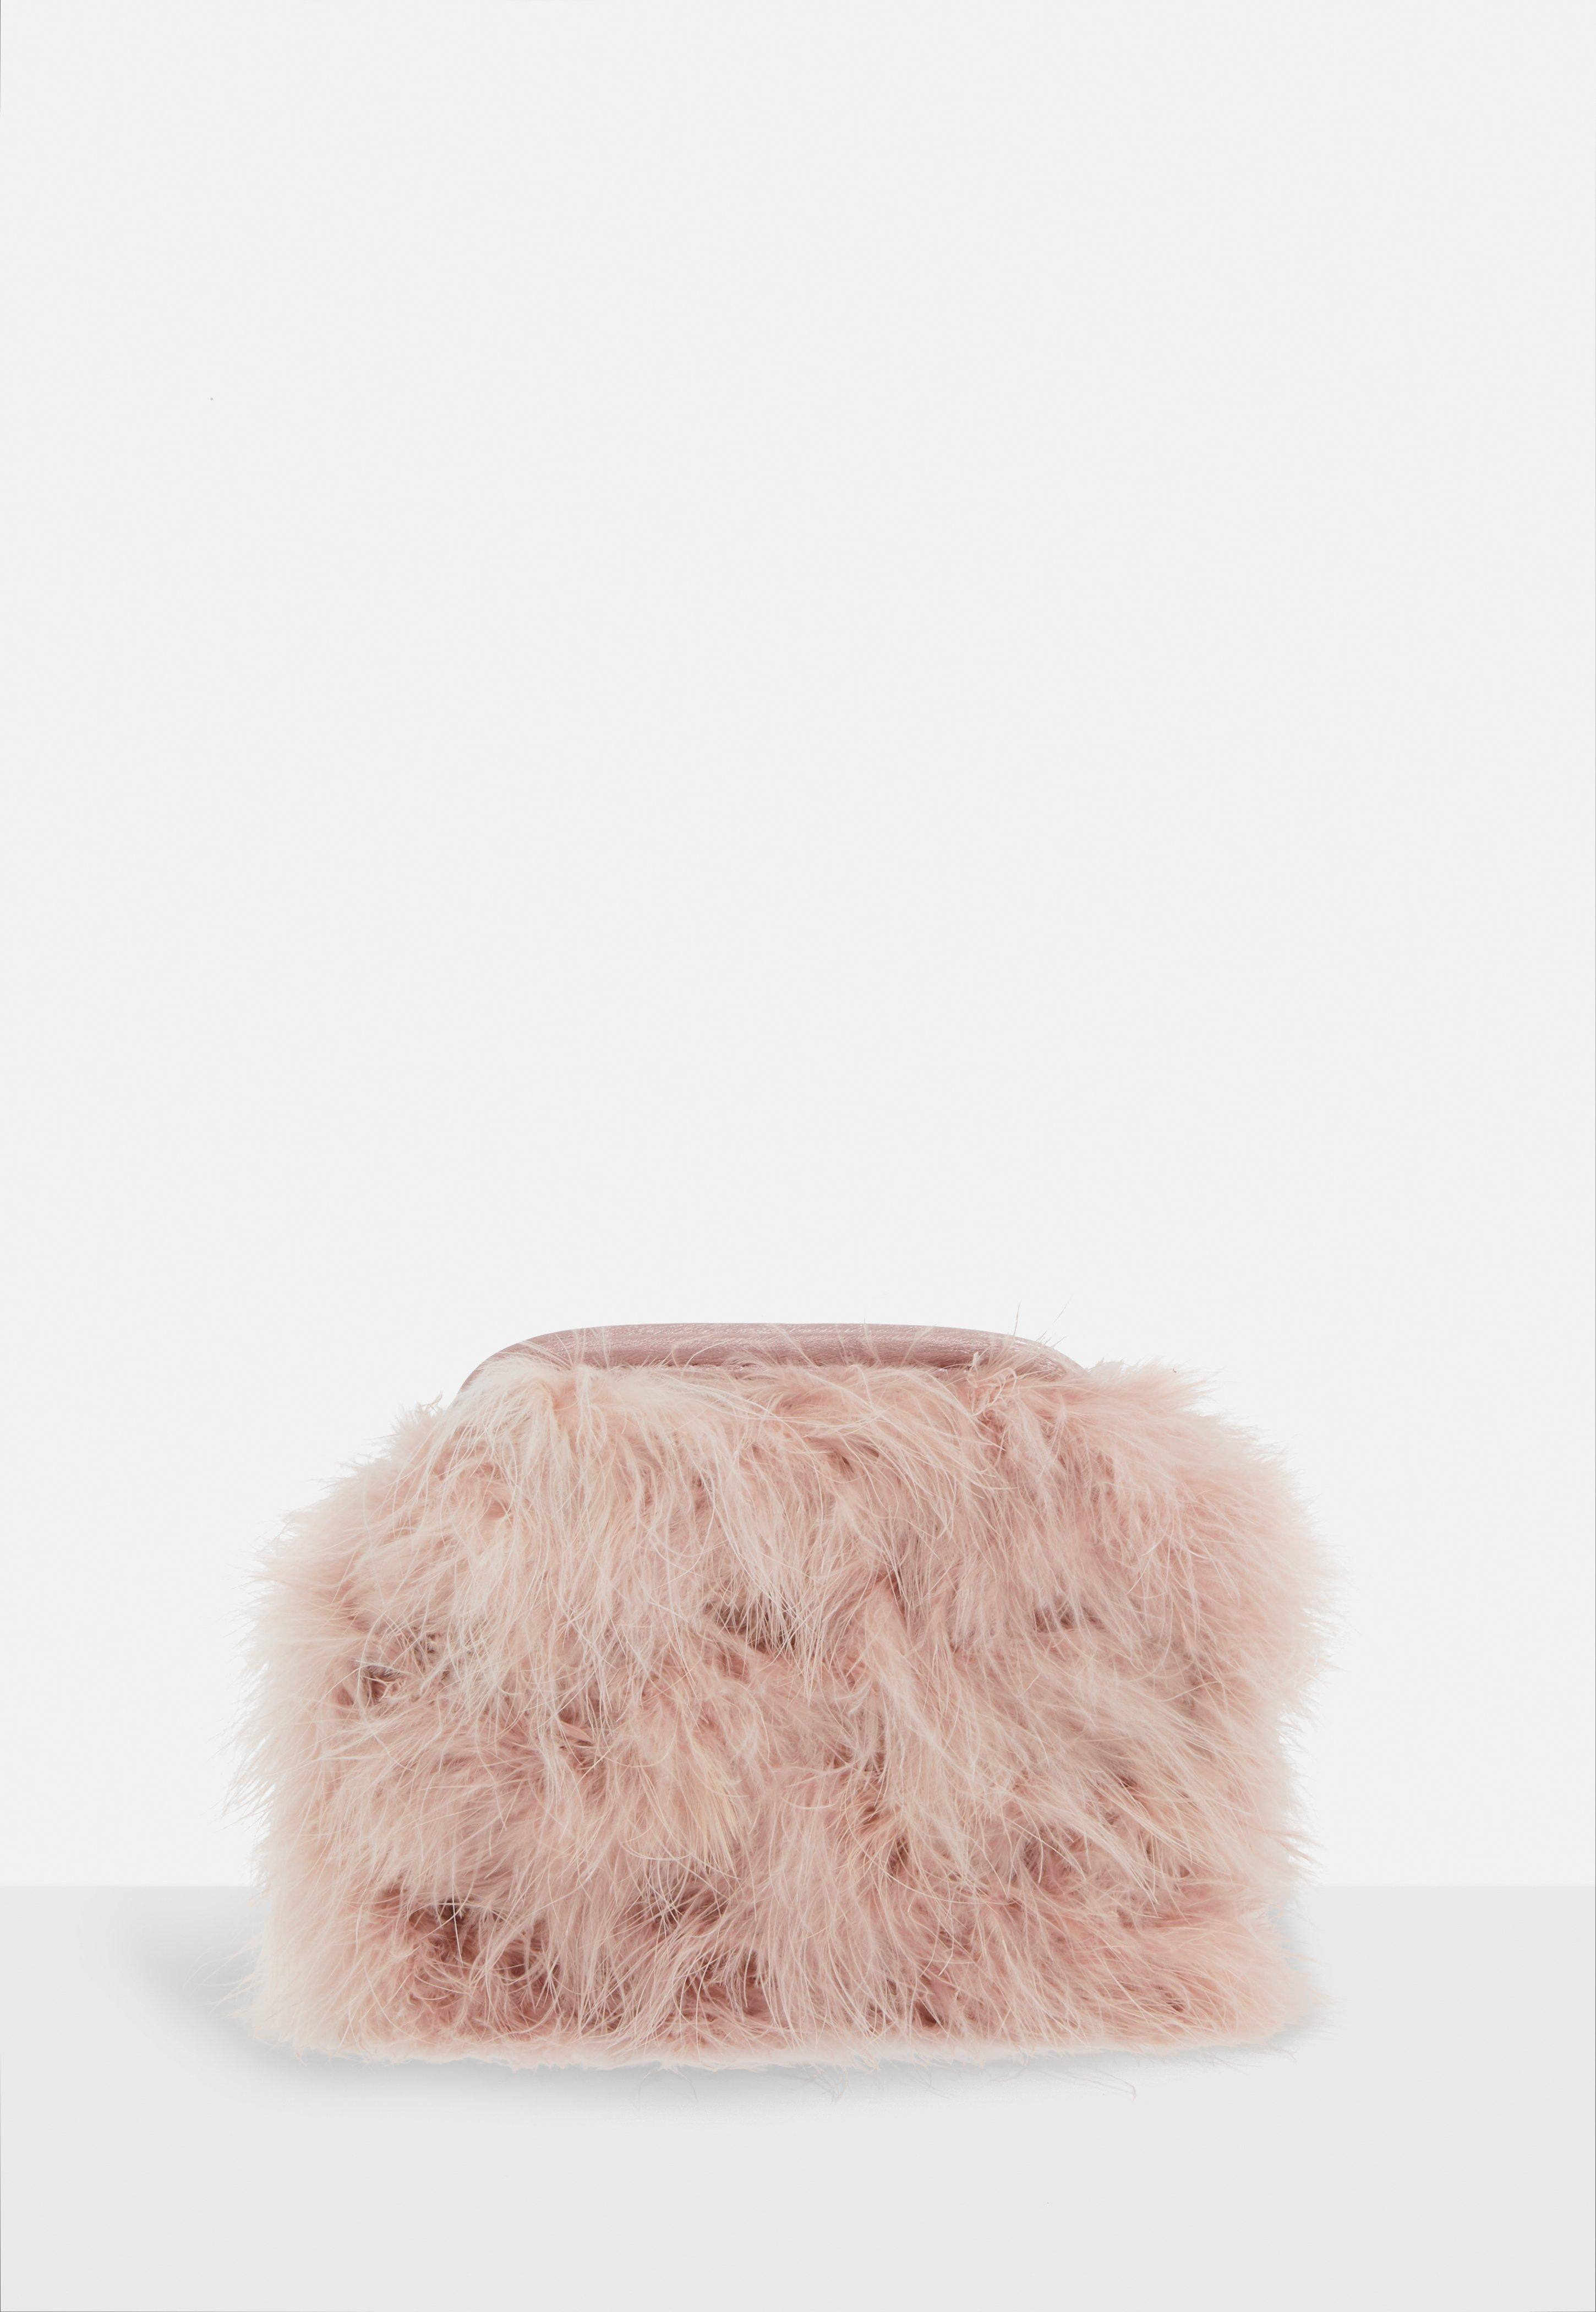 593e3d6c3d Missguided - Pink Blush Round Feather Clutch Bag - Lyst. View fullscreen